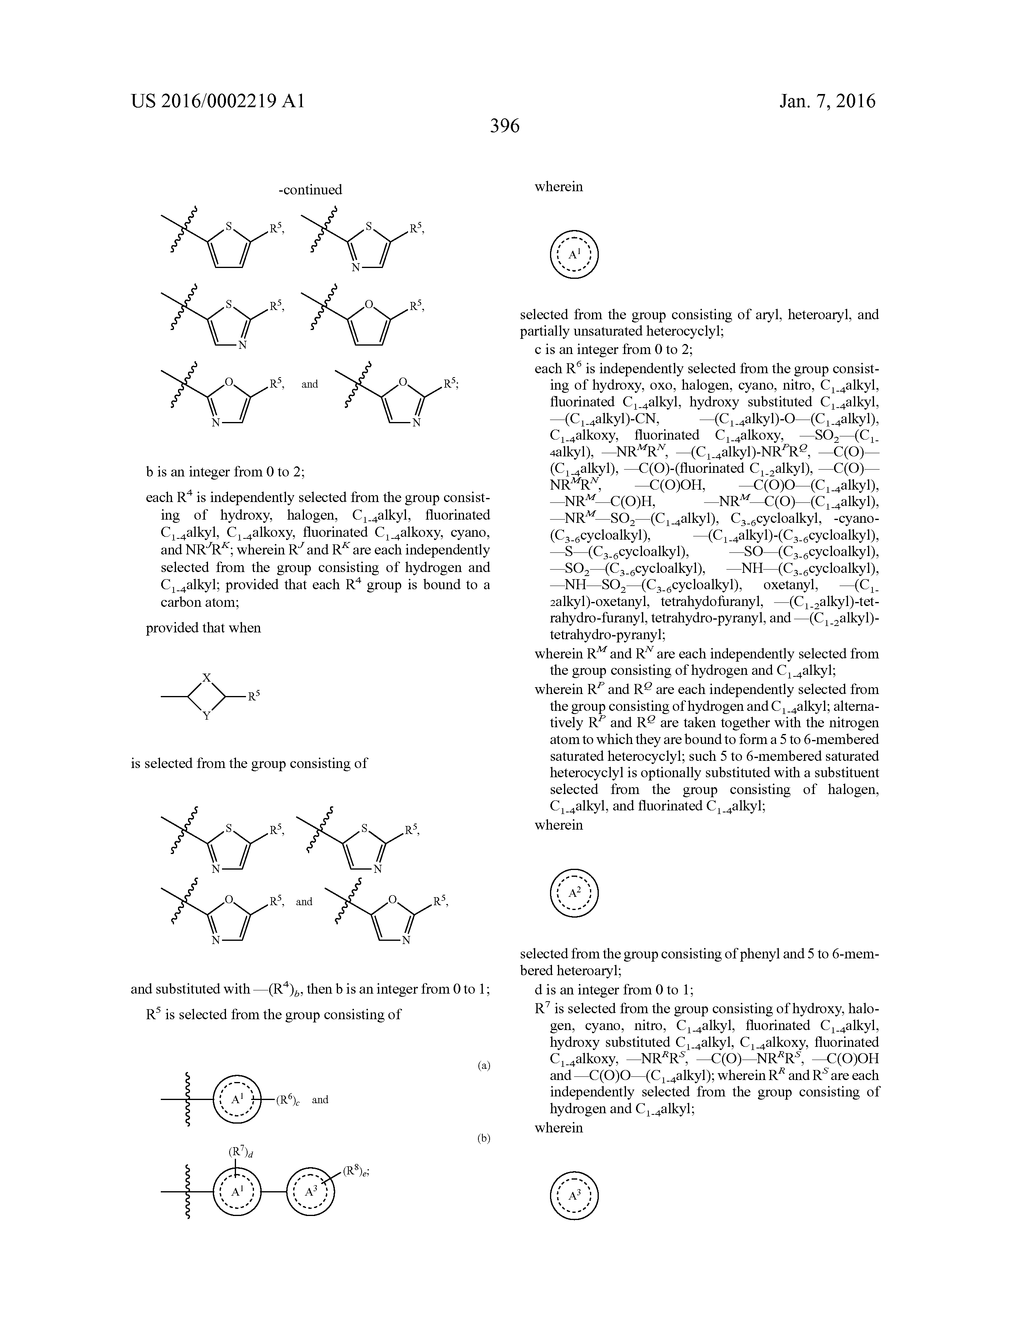 IMIDAZOLIN-5-ONE DERIVATIVE USEFUL AS FASN INHIBITORS FOR THE TREATMENT OF     CANCER - diagram, schematic, and image 397